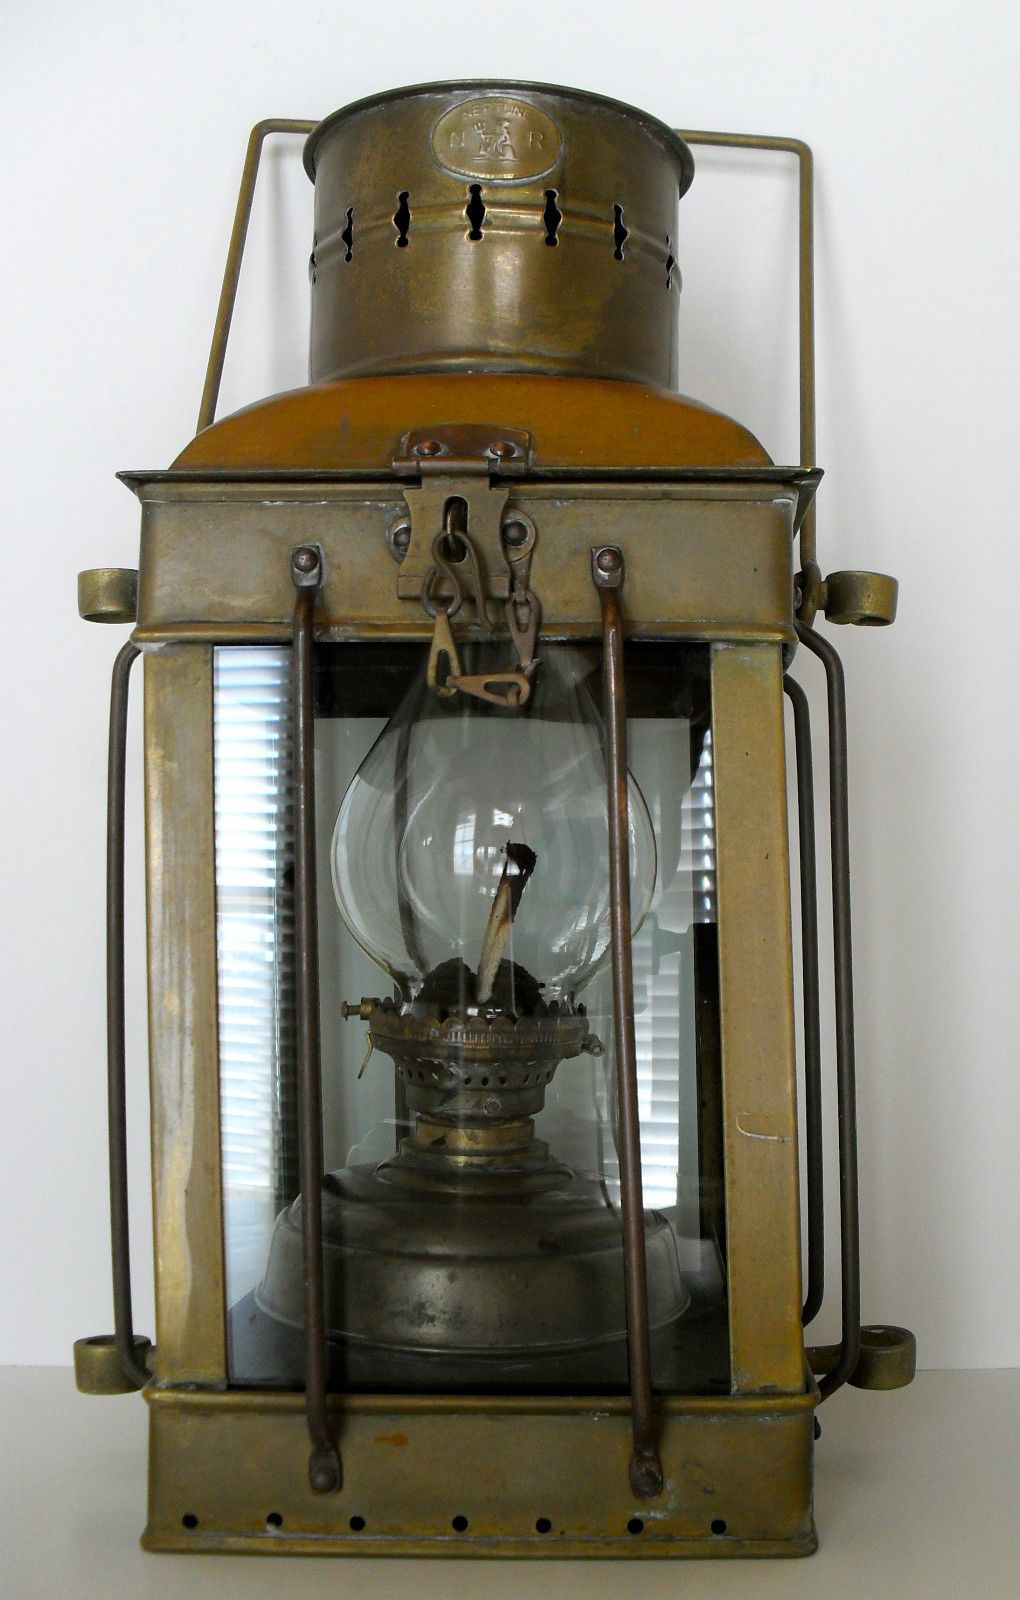 Antique 1920 S Marine Neptune Brass Oil Lantern Ship Lamp Boat Maritime Light Ebay Nautical Lamps Old Lanterns Lantern Candle Holders